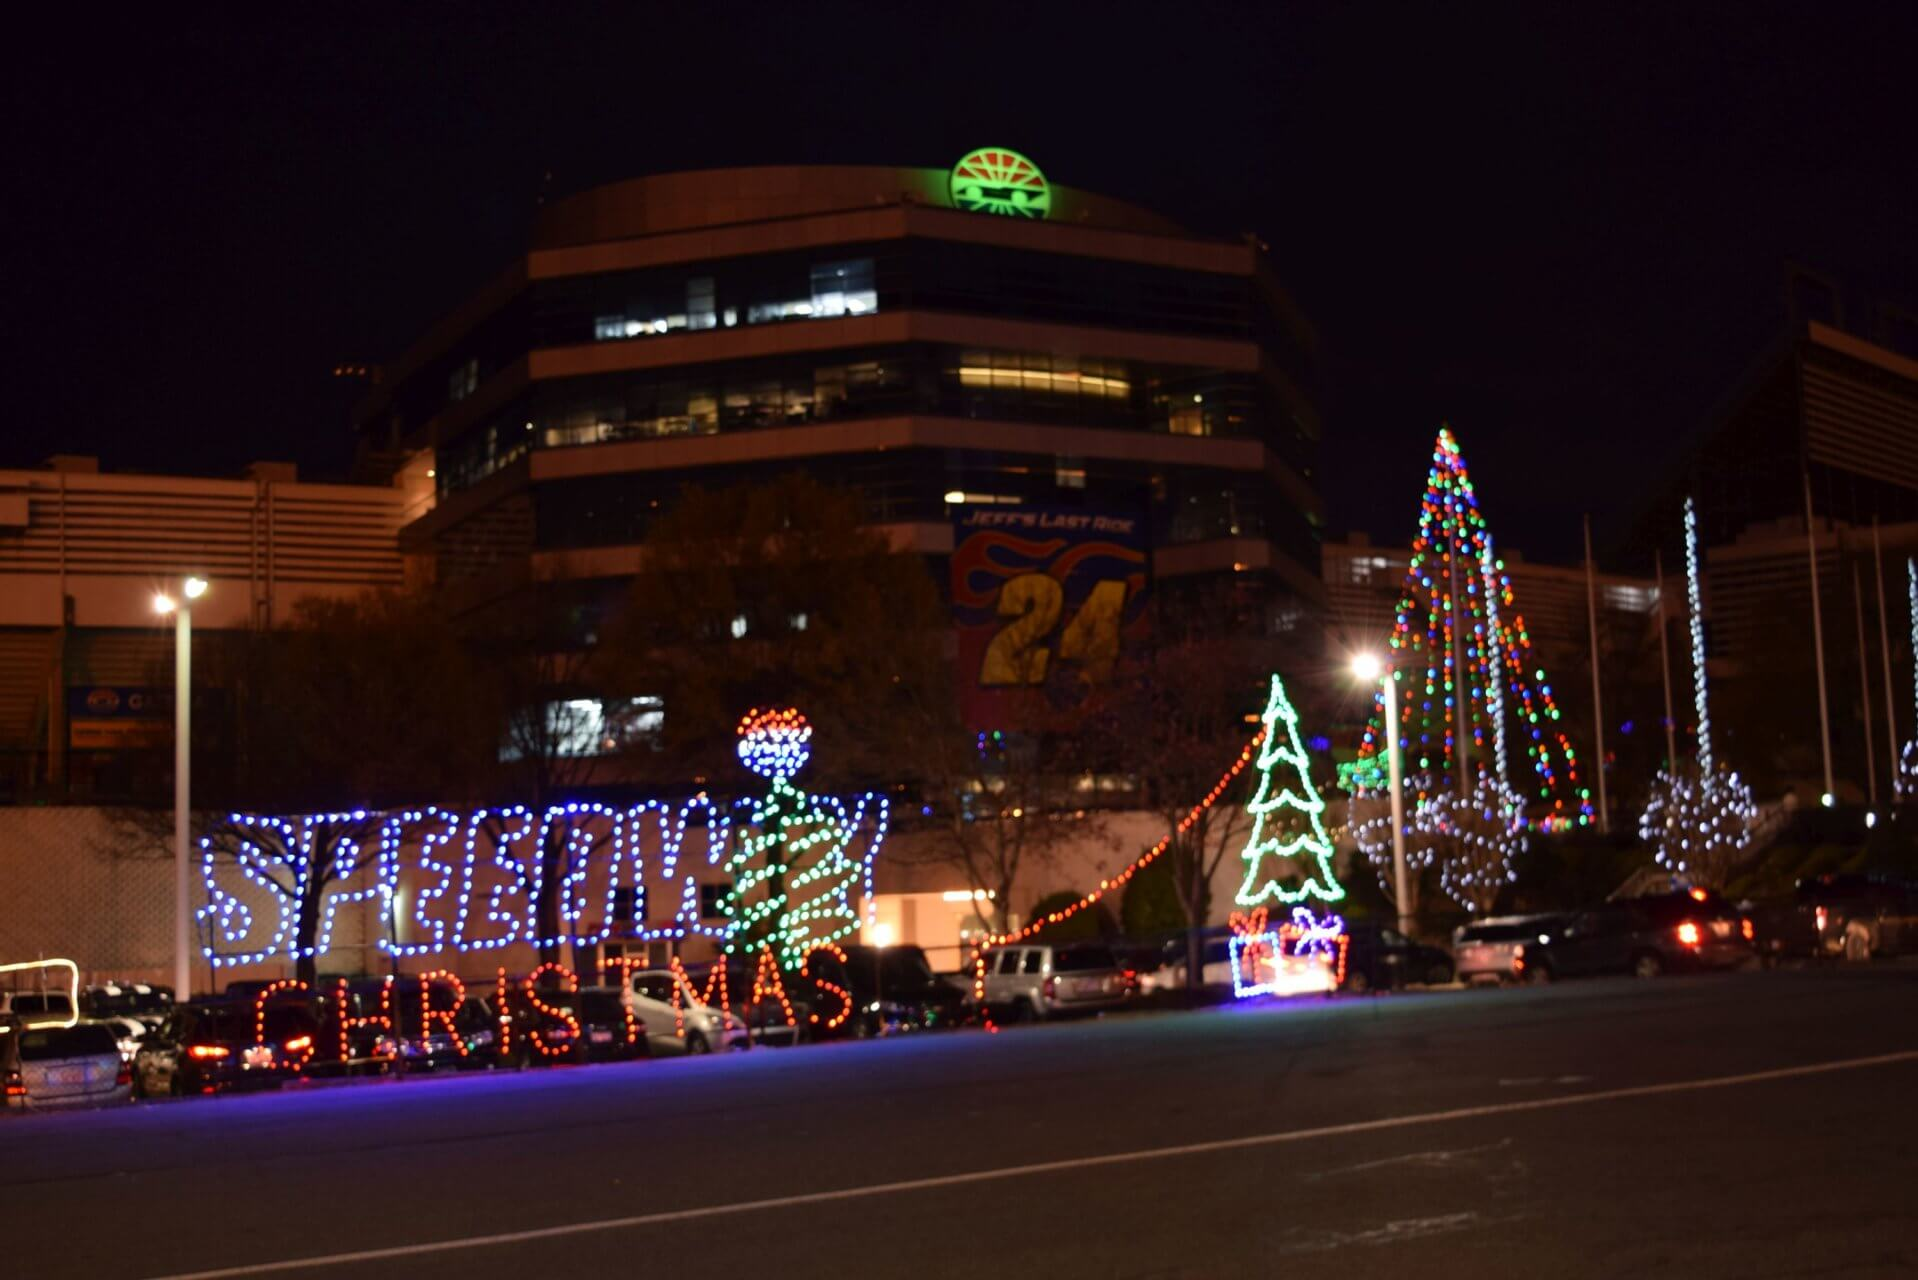 Charlotte Motor Speedway Christmas Lights.Speedway Christmas Returns Nov 19 With A 3 75 Mile Course